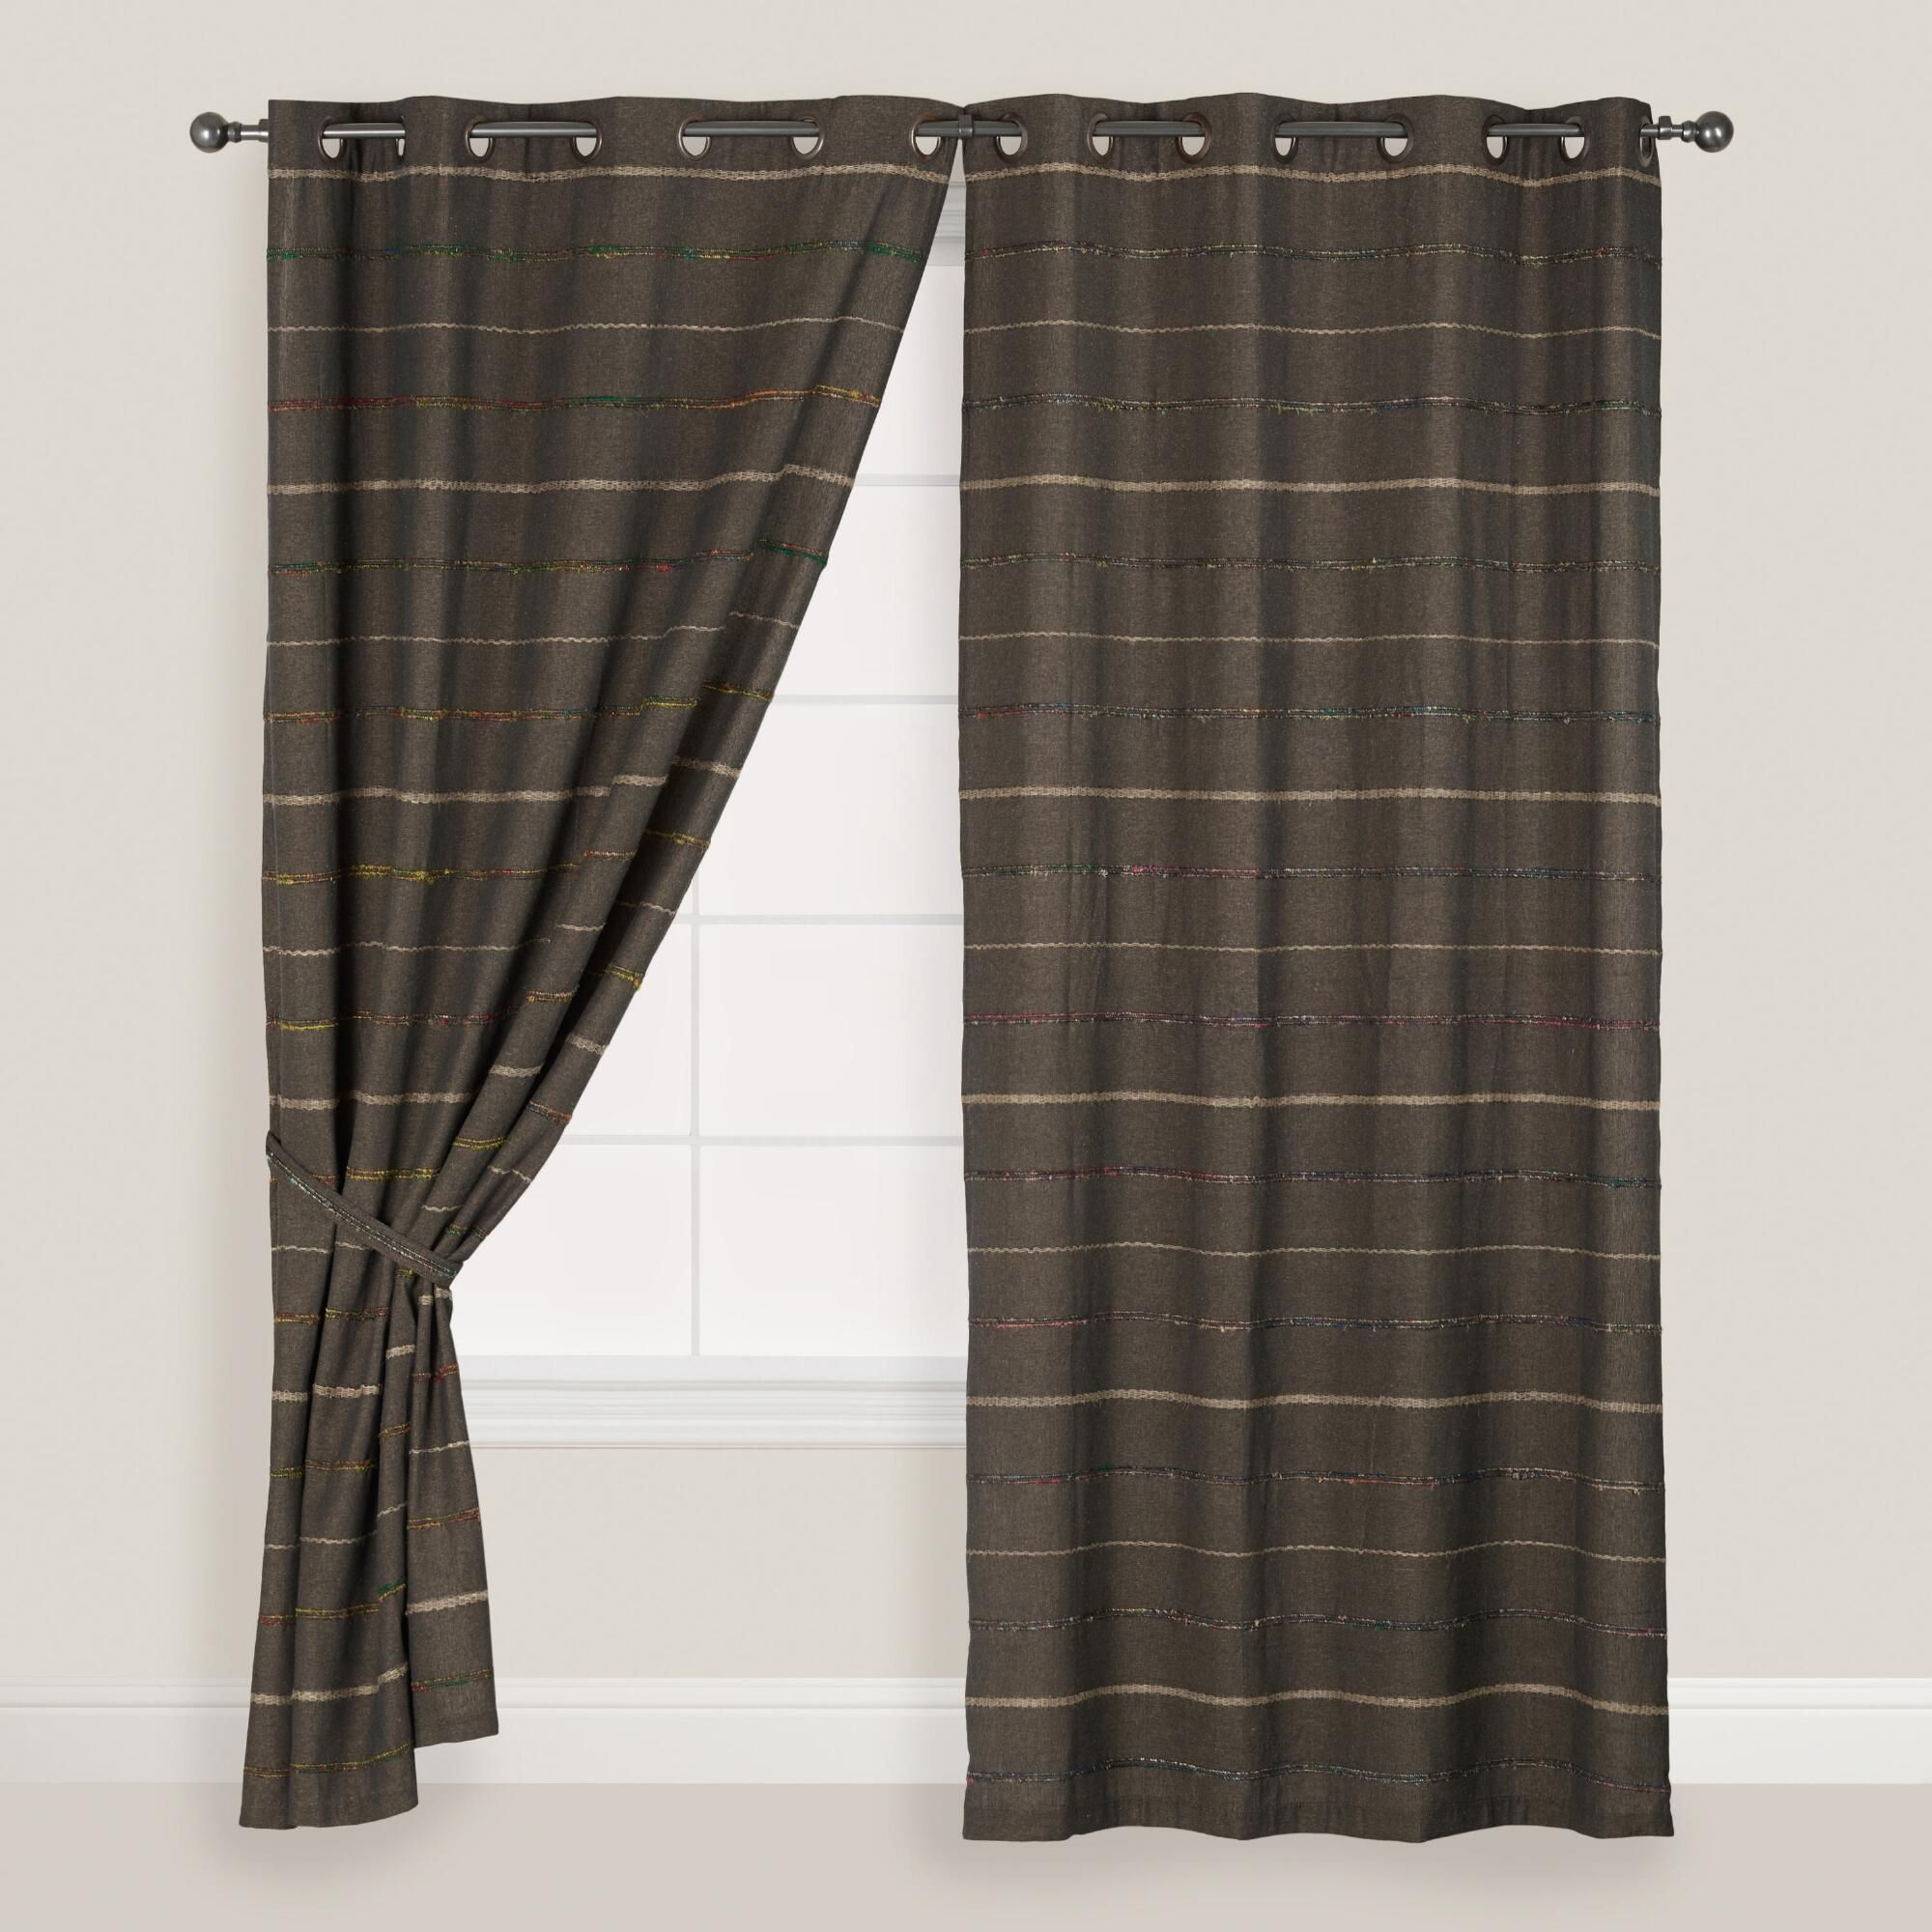 chic tier curtain pdx wayfair panel curtains reviews chambray treatments single window seersucker